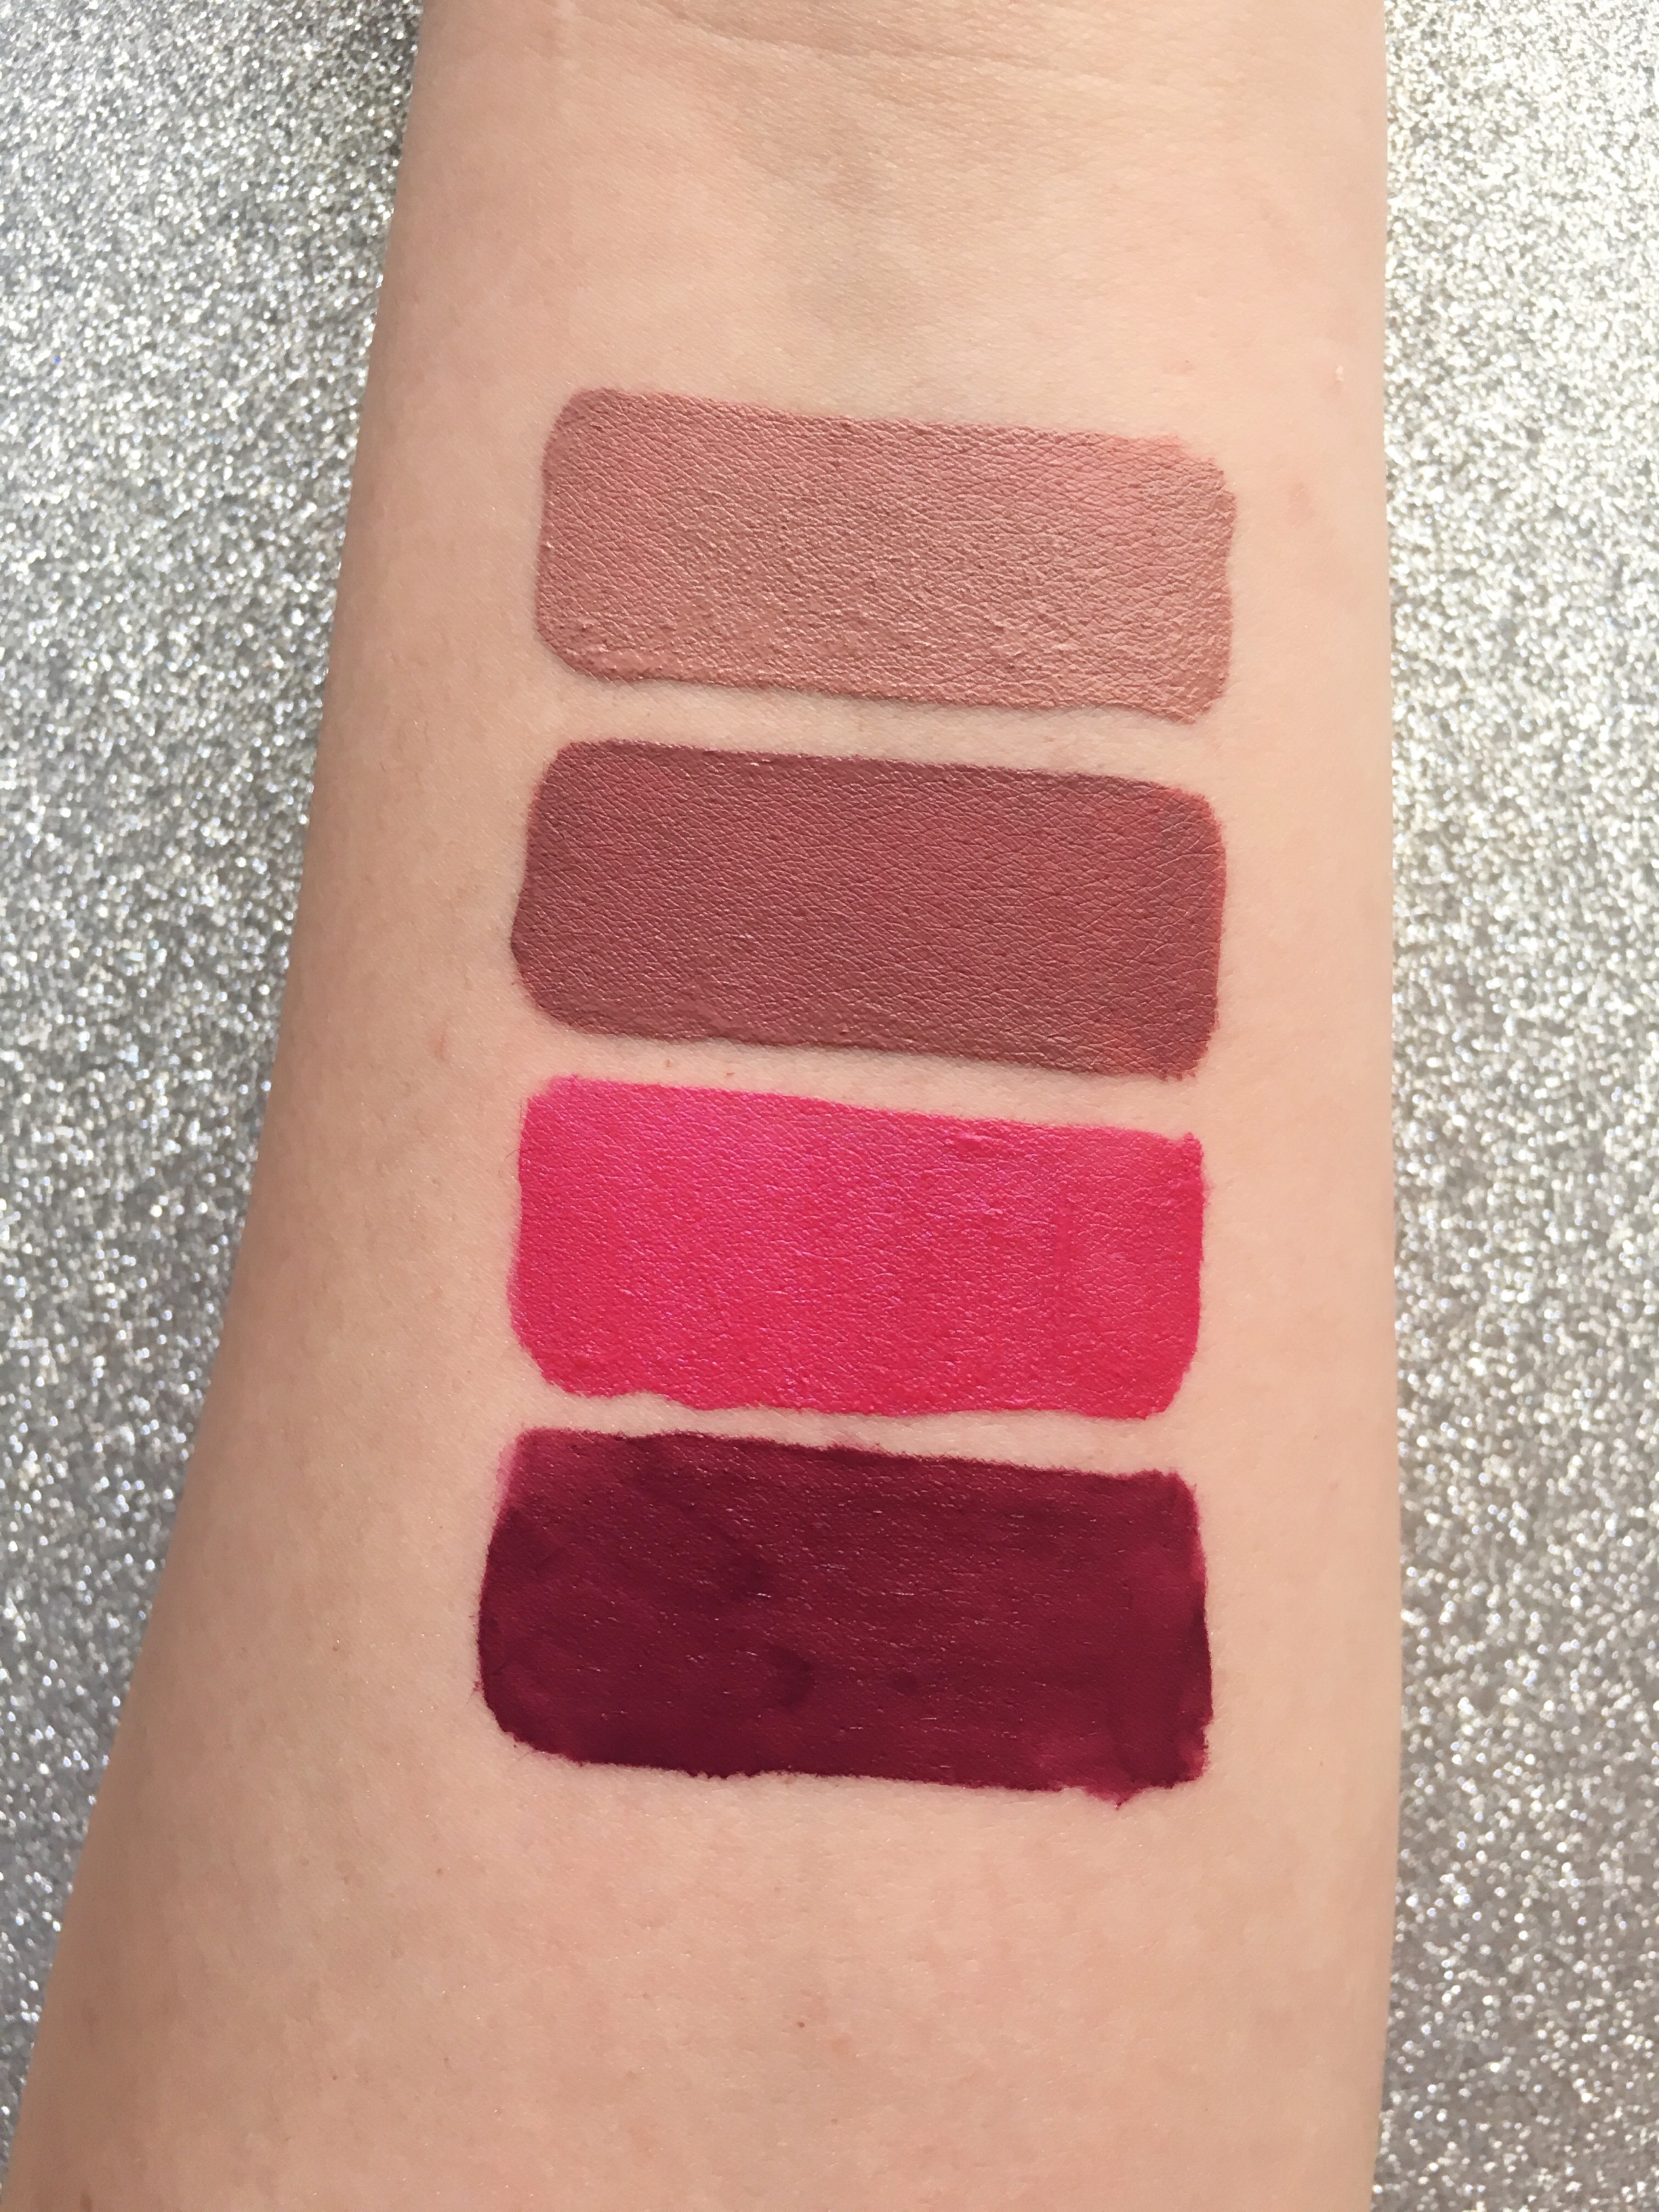 Review: Colourpop Ultra Satin Lip